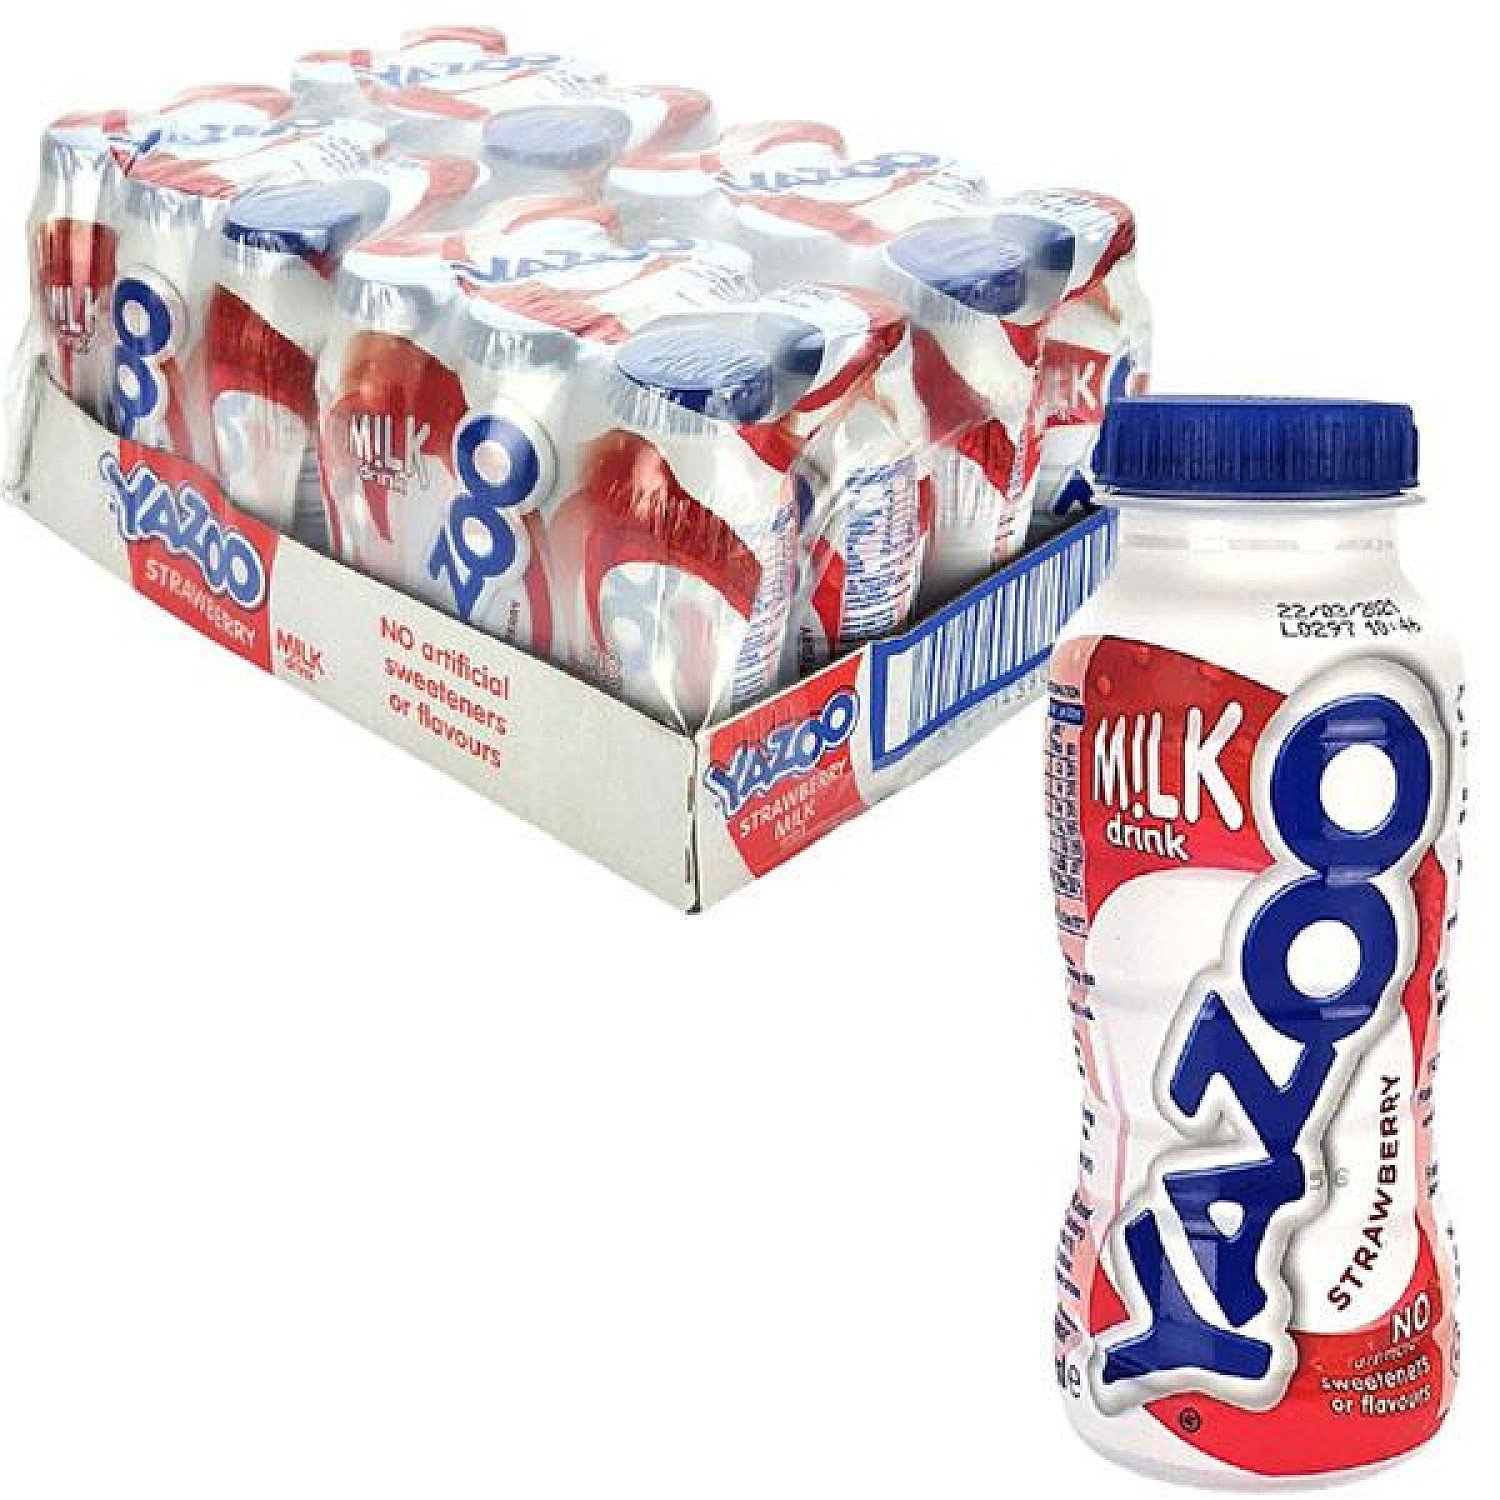 24 X YAZOO STRAWBERRY MILK DRINK 200ML BOTTLES